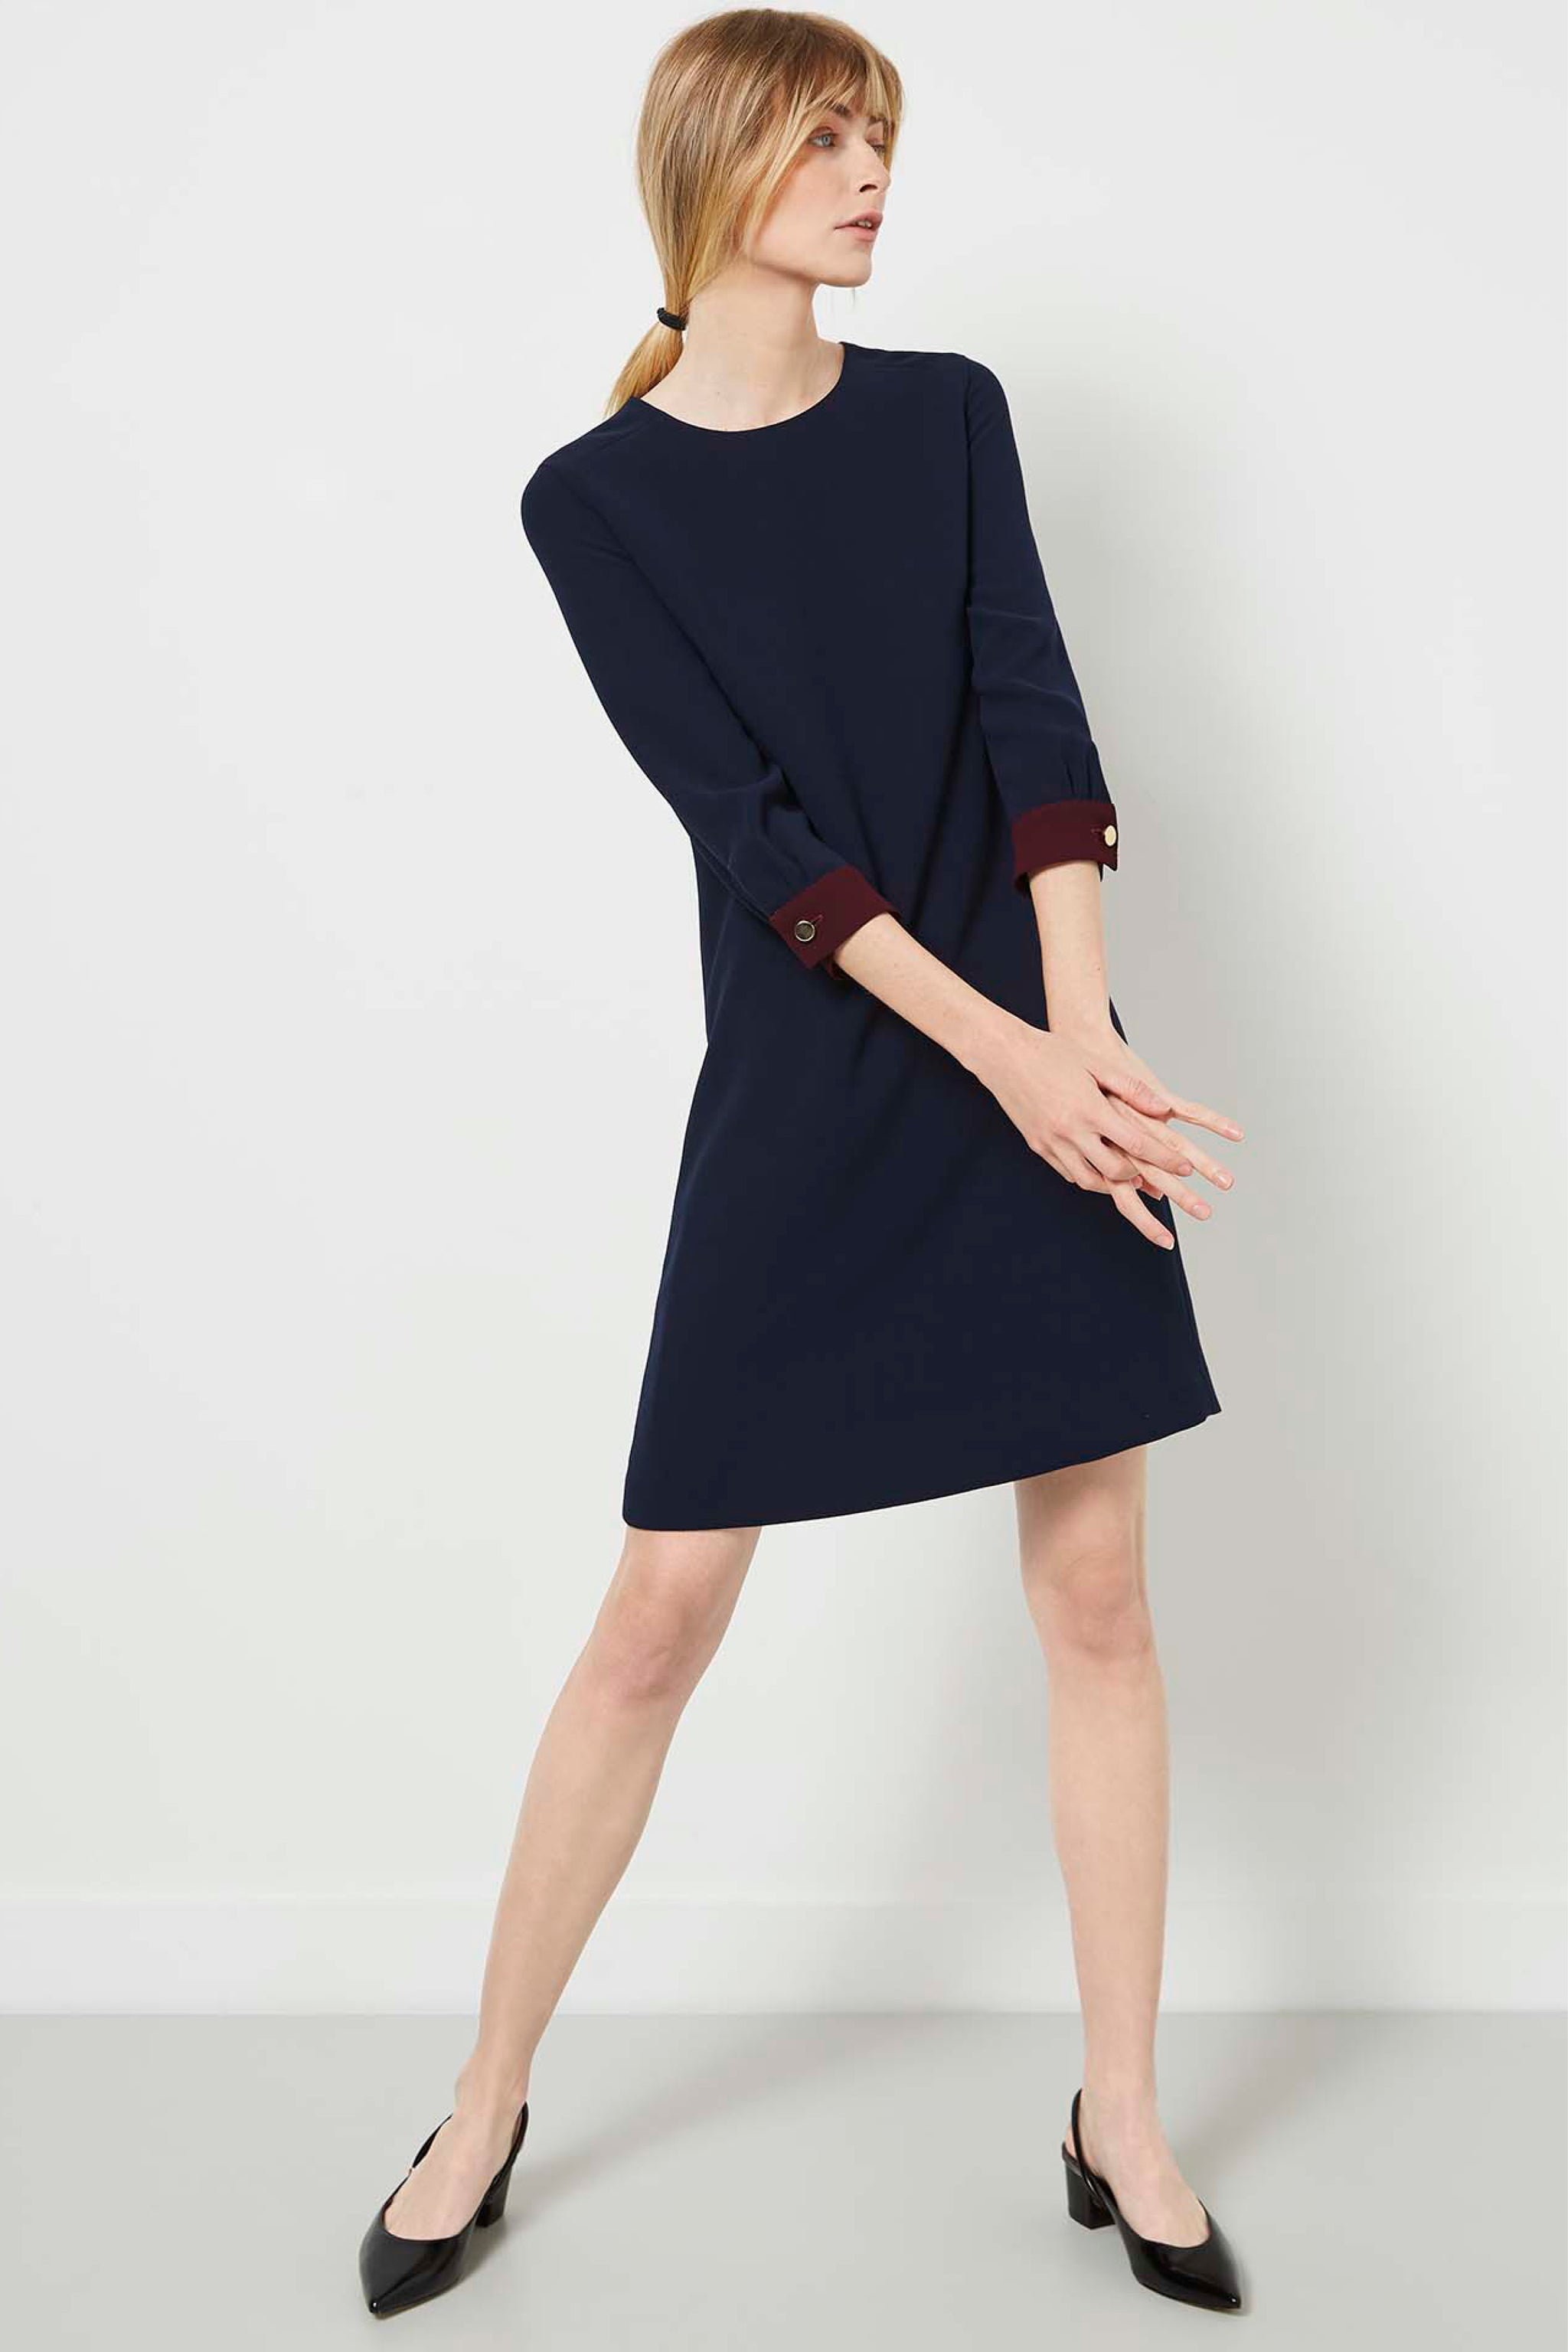 Falmouth Navy and Aubergine Dress